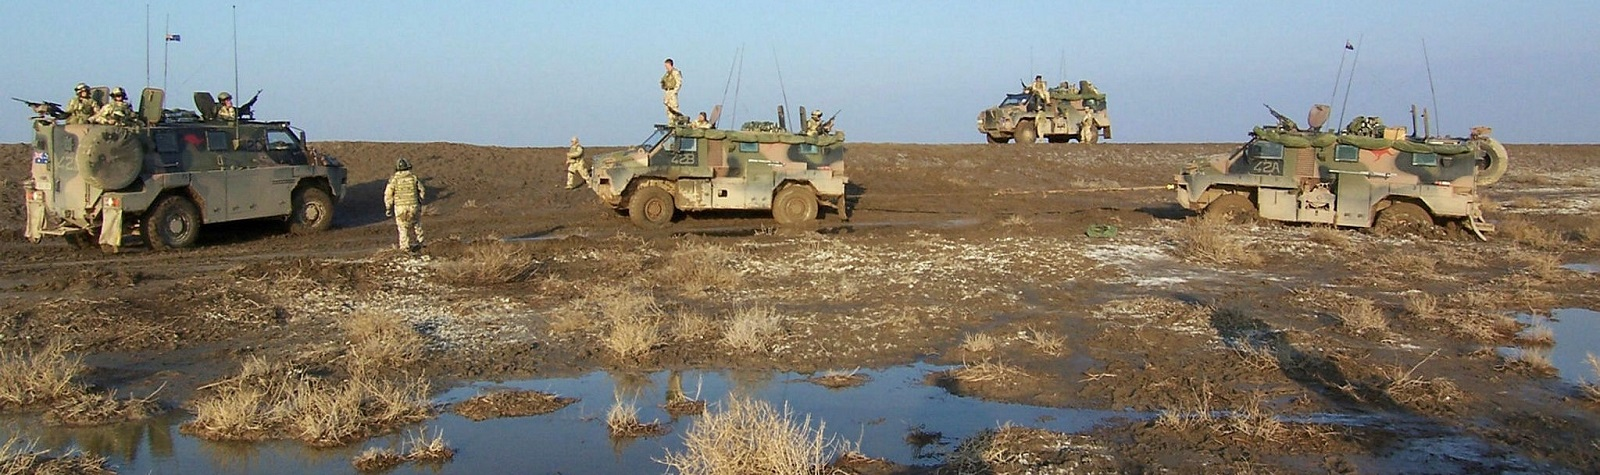 Australian Army personnel in Iraq in 2006 (Photo: Australian Defence Image Library)